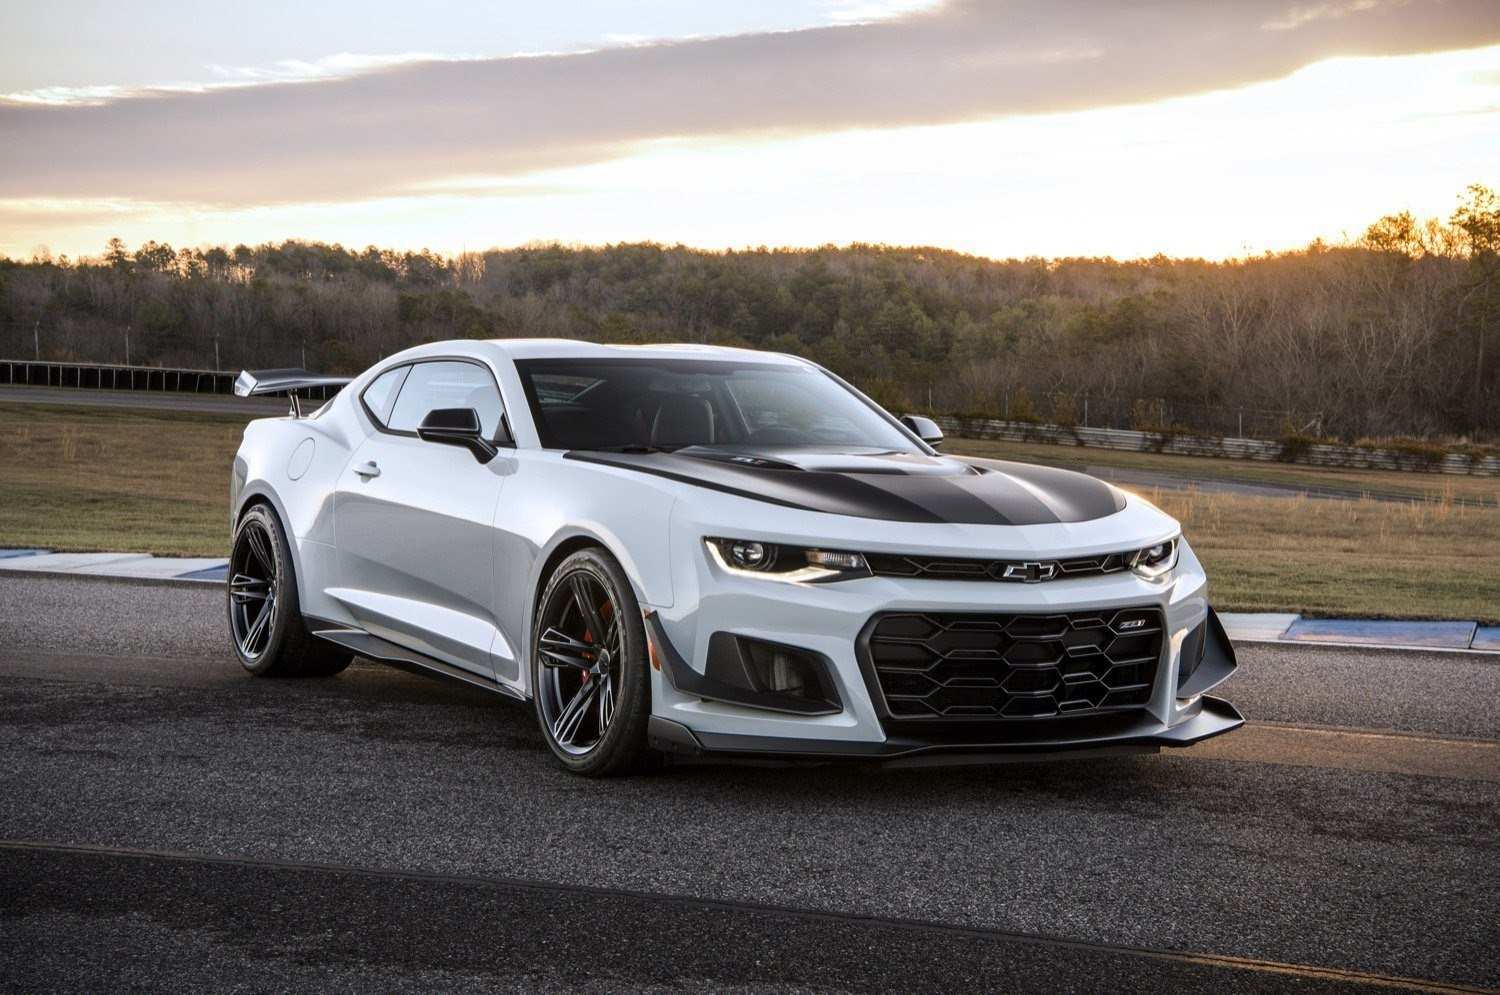 69 The 2020 Chevy Camaro Competition Arrival Performance and New Engine for 2020 Chevy Camaro Competition Arrival